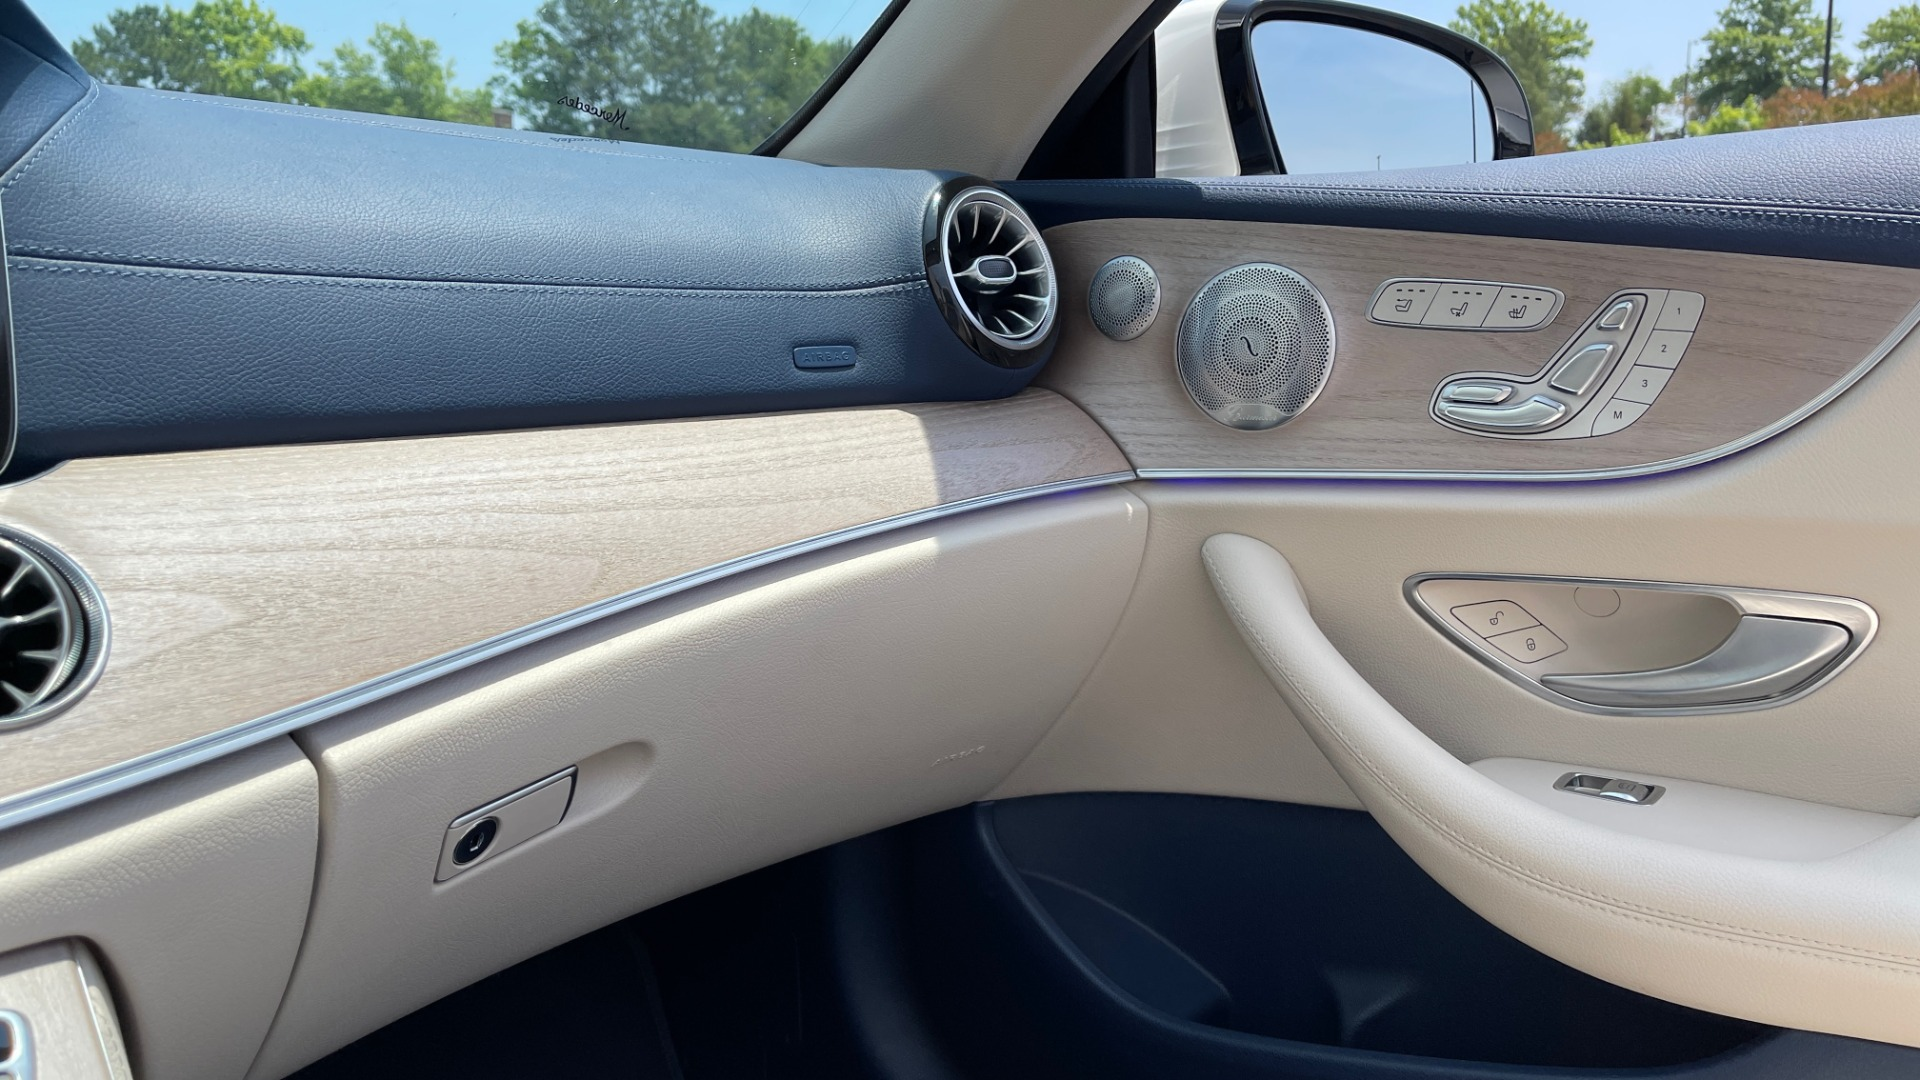 Used 2018 Mercedes-Benz E-CLASS E 400 CABRIOLET / PREM PKG / AMG LINE / NAV / REARVIEW for sale Sold at Formula Imports in Charlotte NC 28227 34